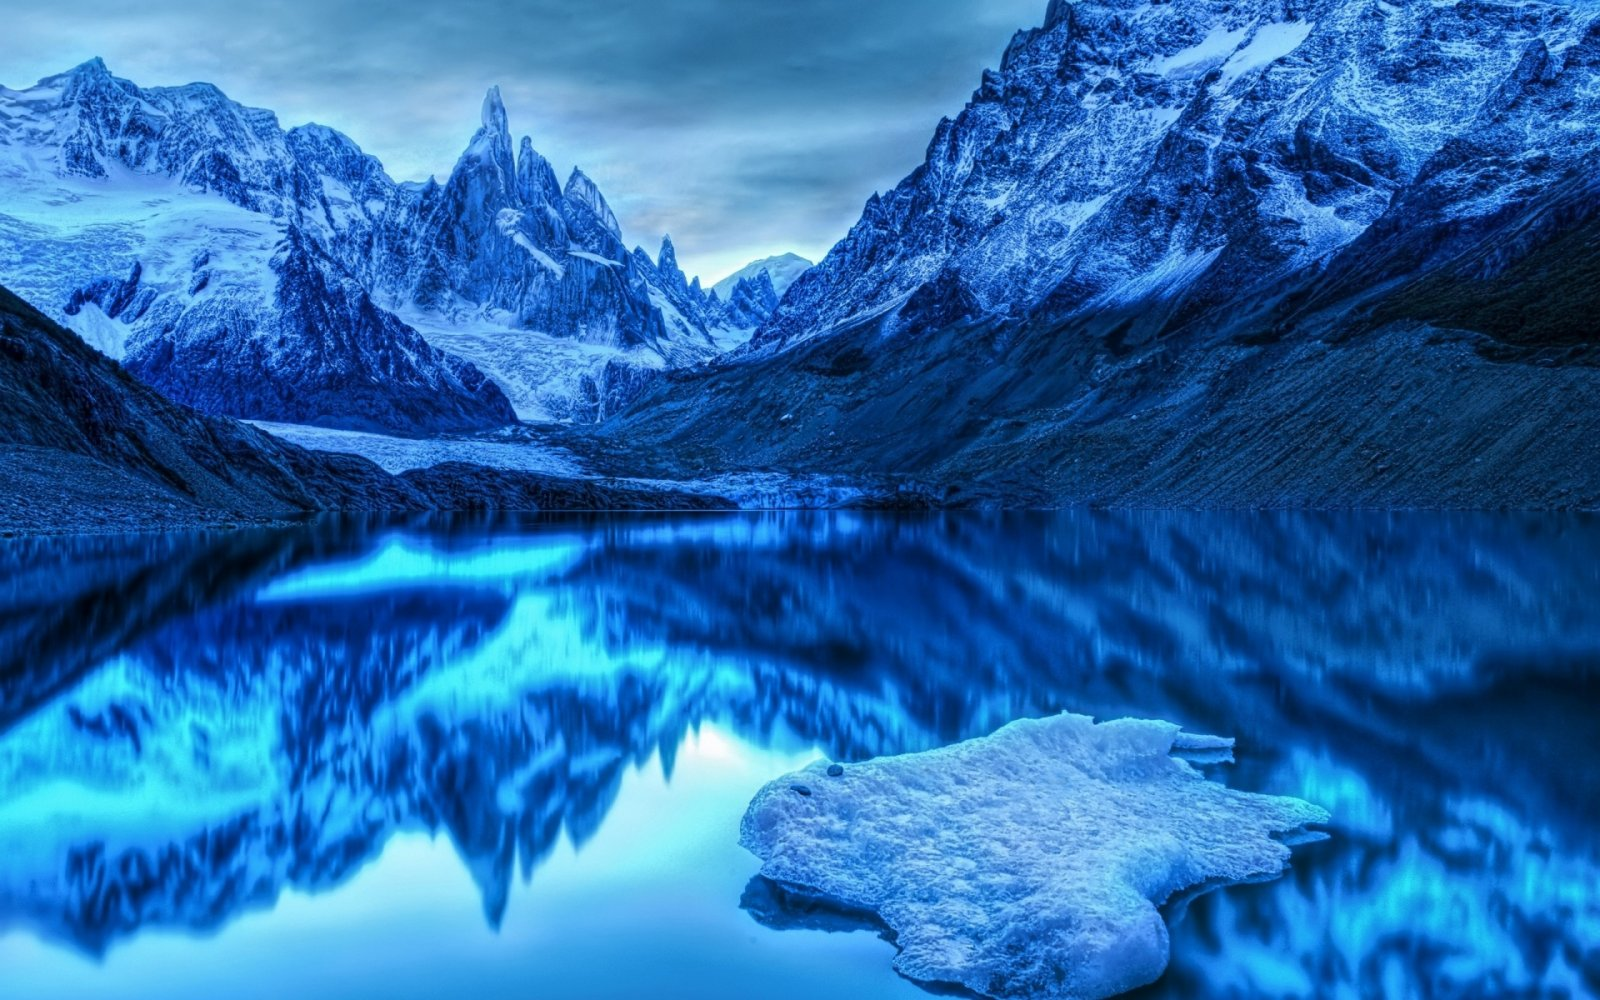 wallpaper de paisajes nevados: